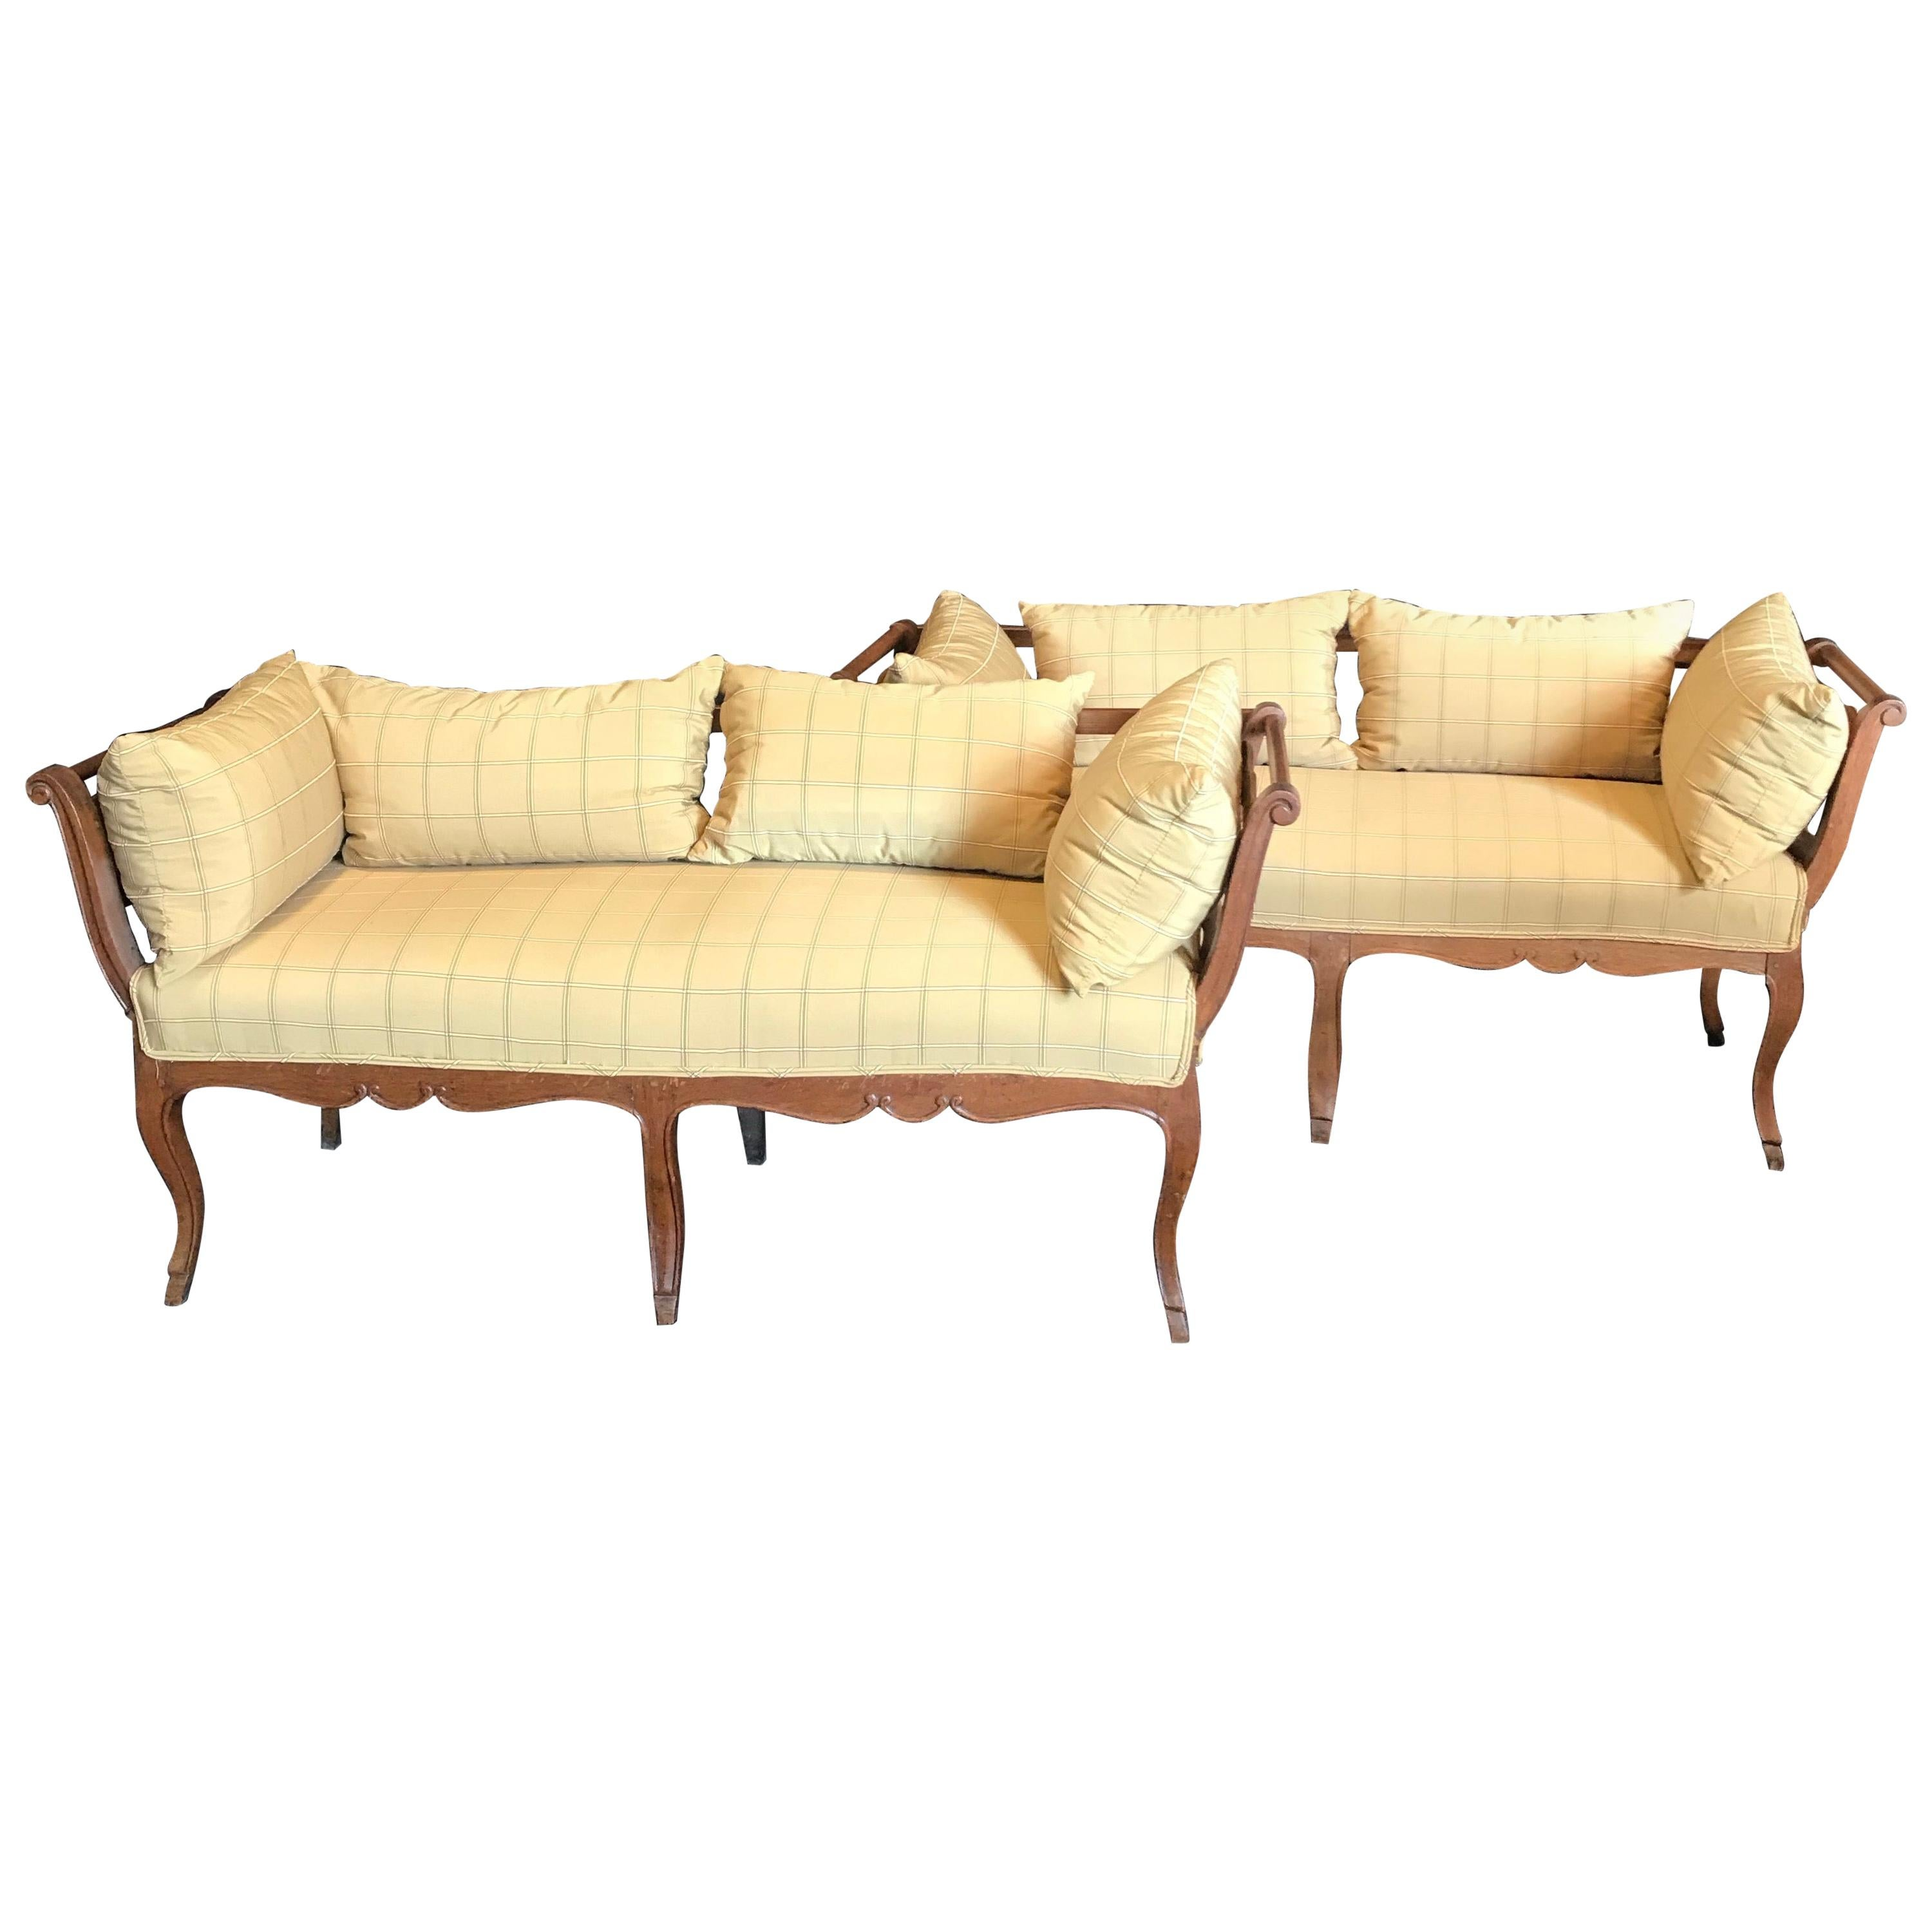 Stunning Pair of French Country 19th Century Louis XV Settees Loveseats